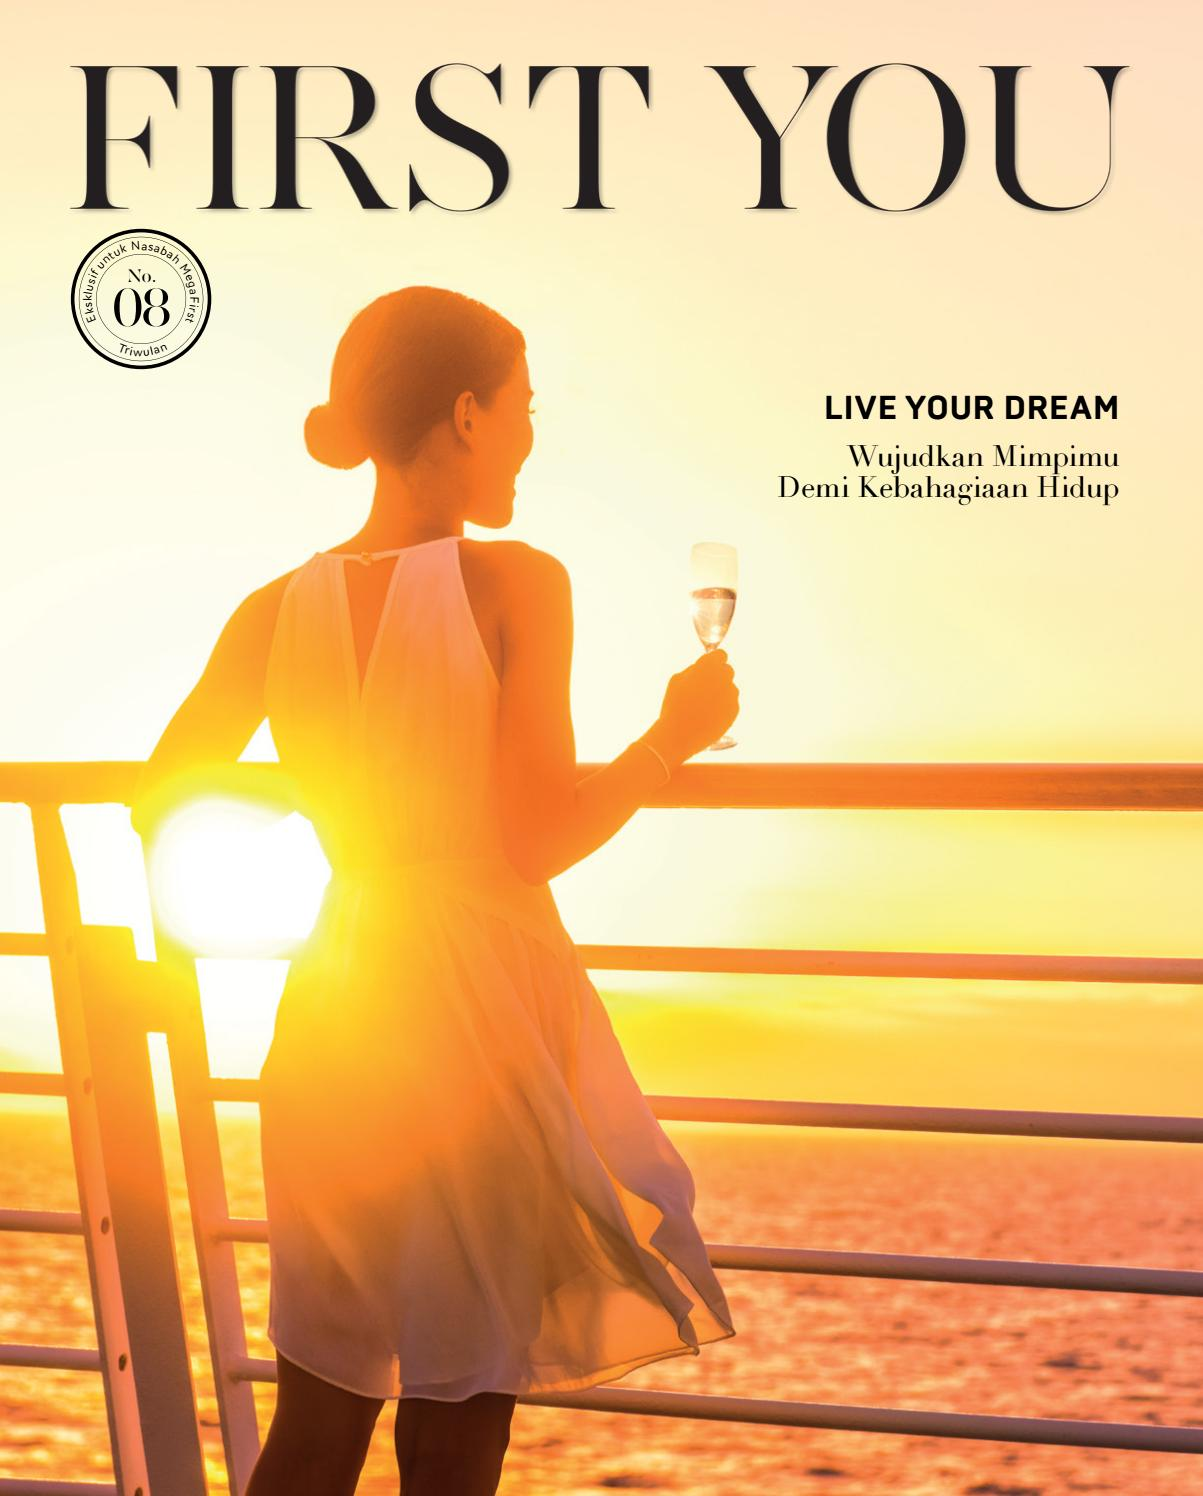 First You Edisi 08 By Exquisite Media Issuu